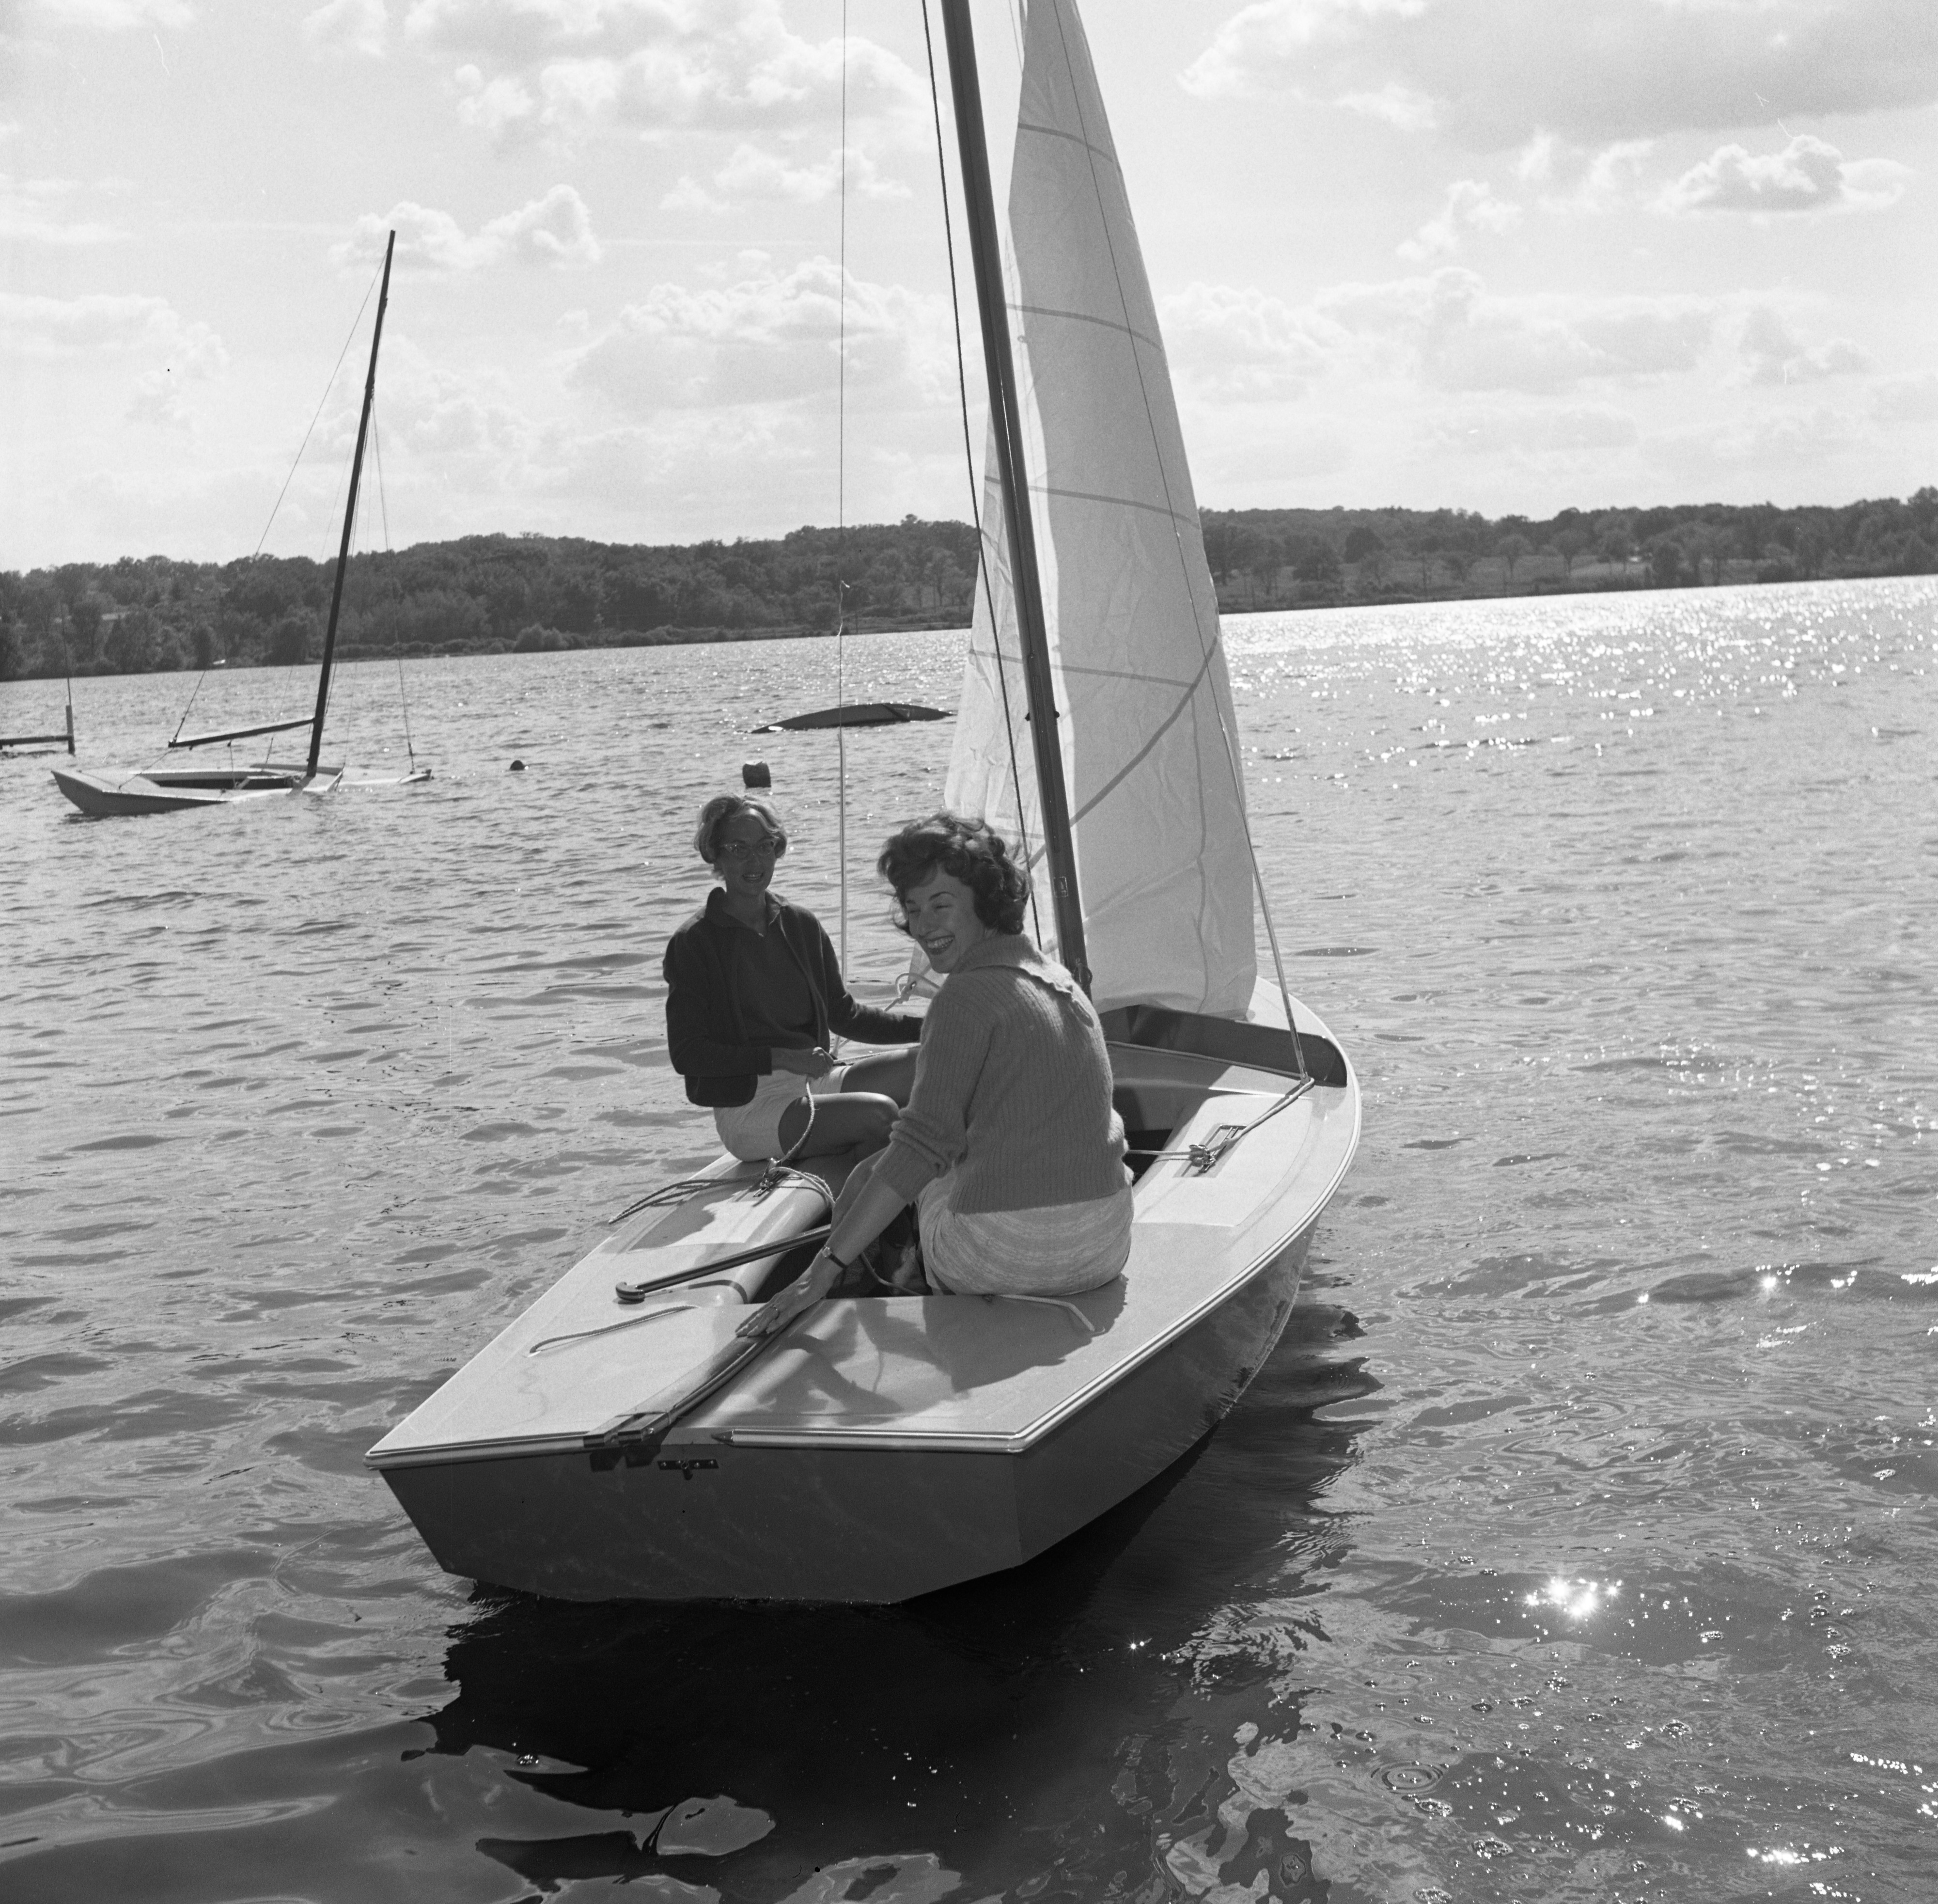 Barton Boat Club Sailors Prepare For Race On Barton Pond, July 1962 image